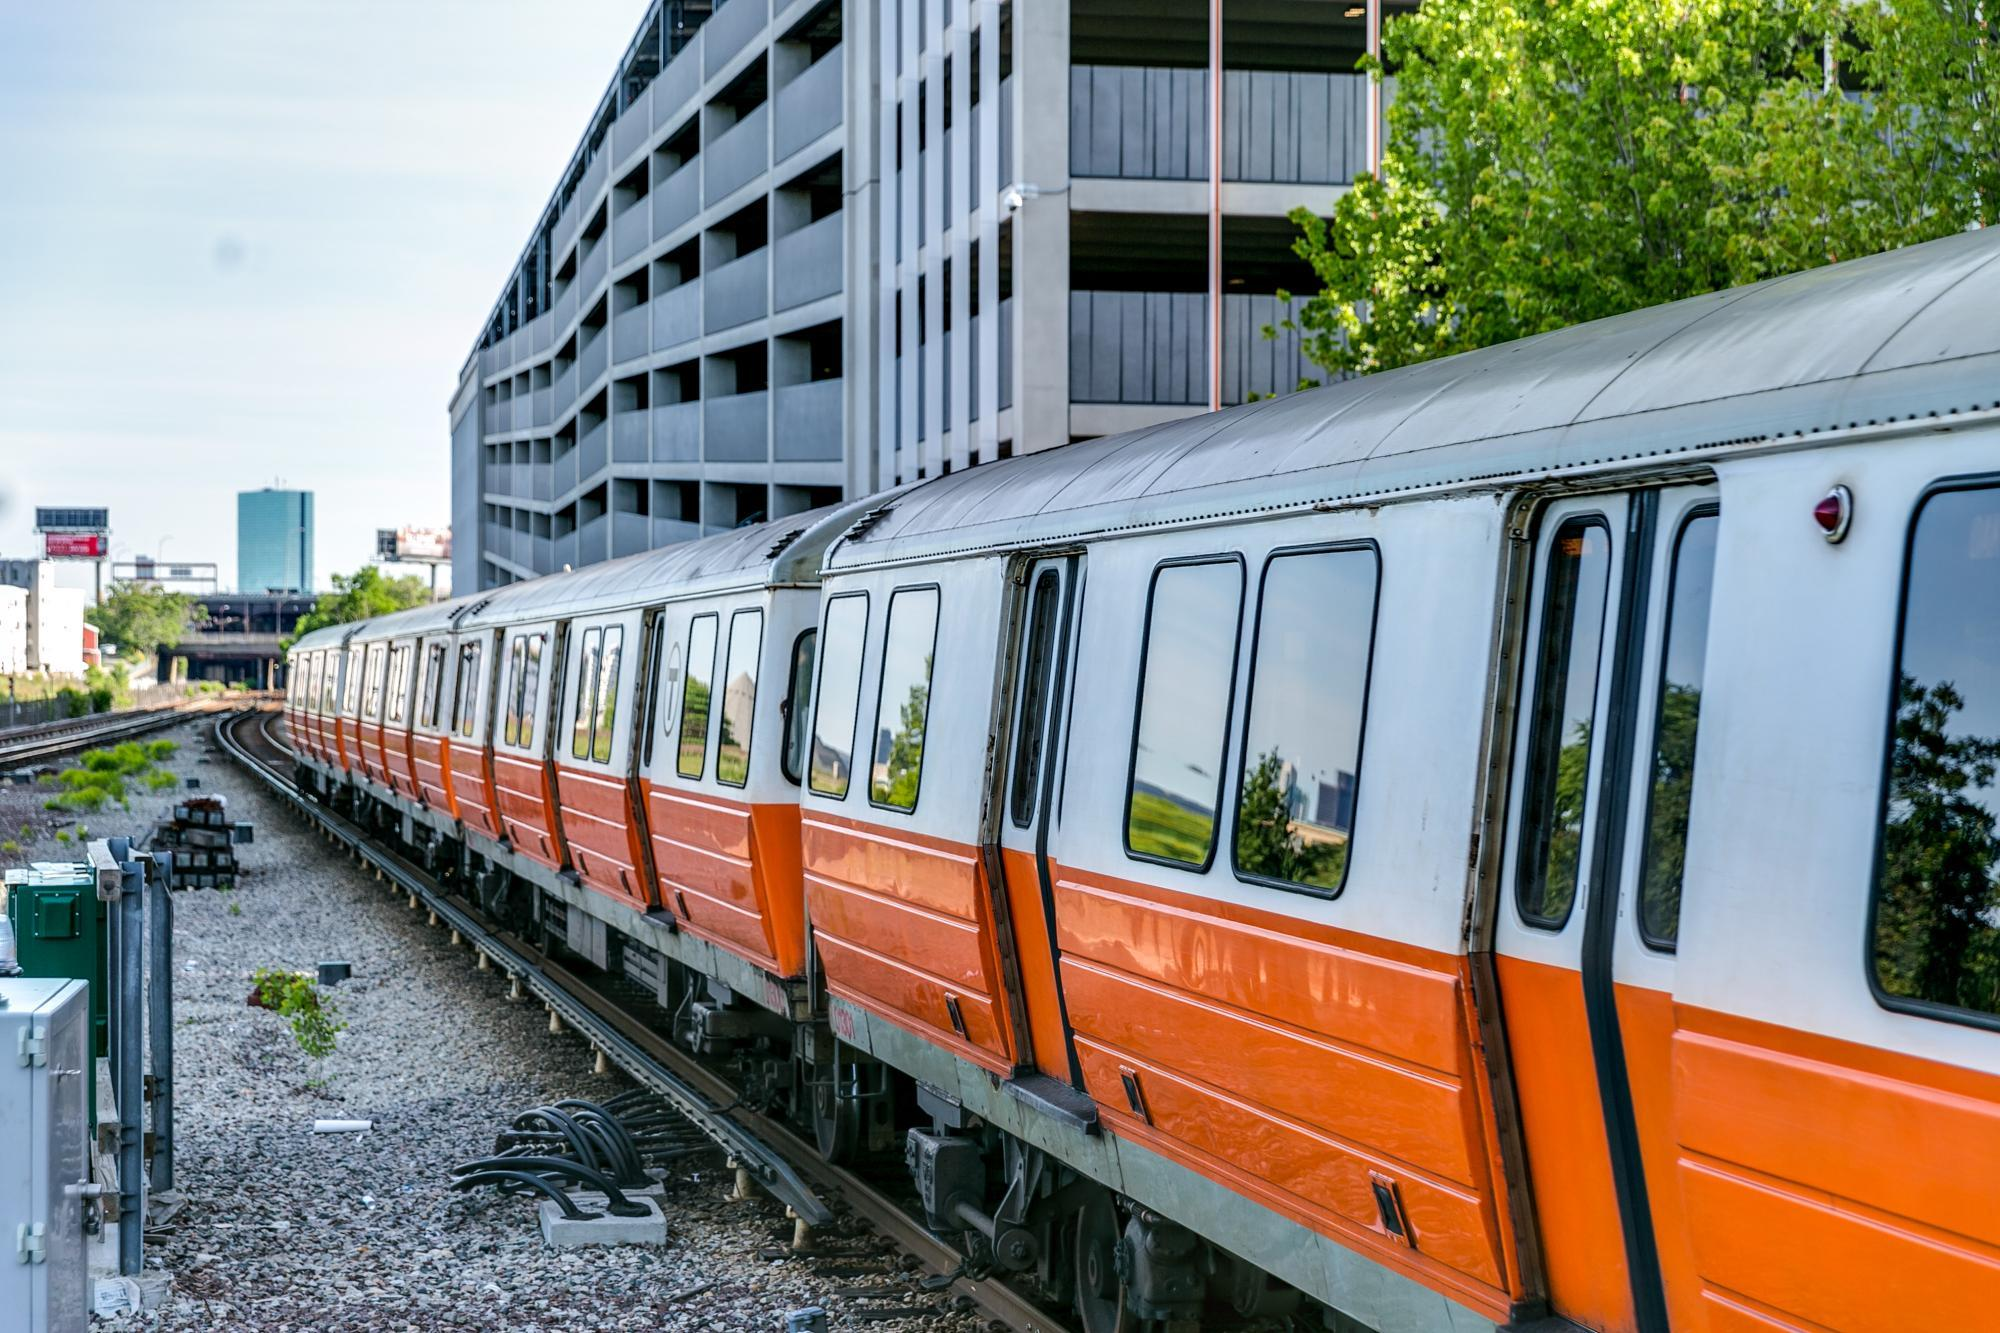 Orange Line train at Assembly Station during the summer, with Boston skyline in background